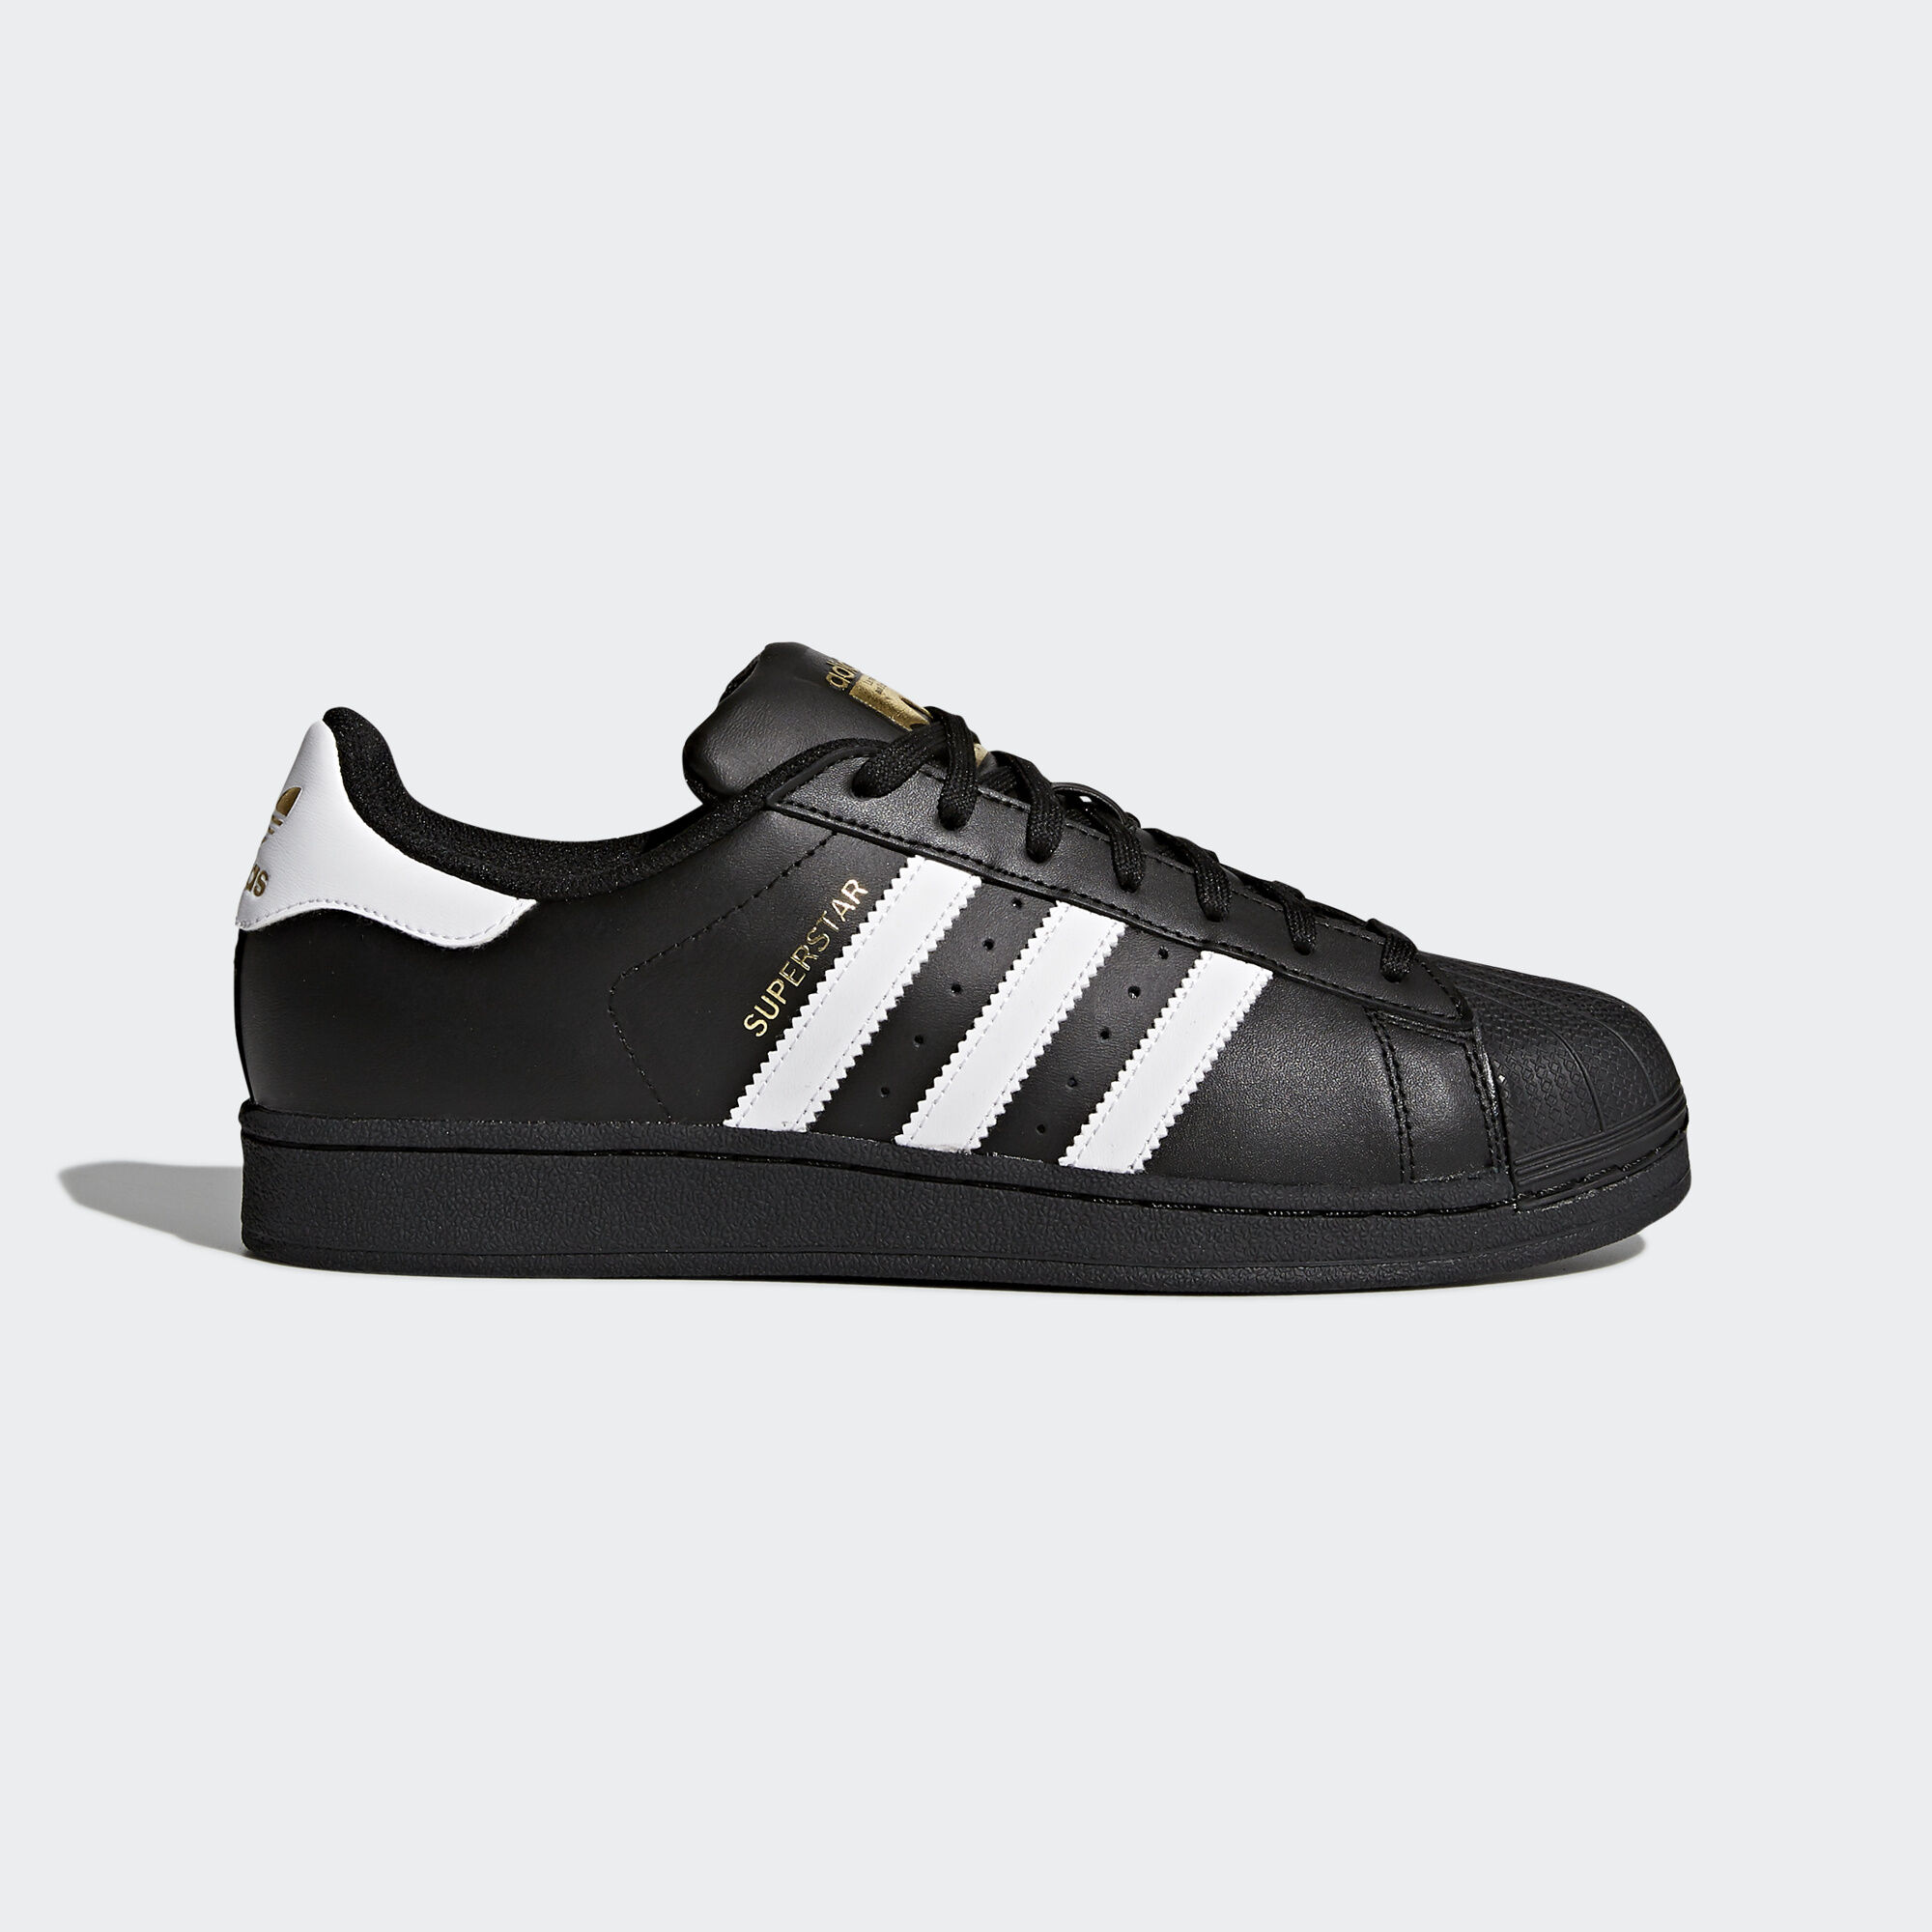 Adidas Superstar 2017 Black